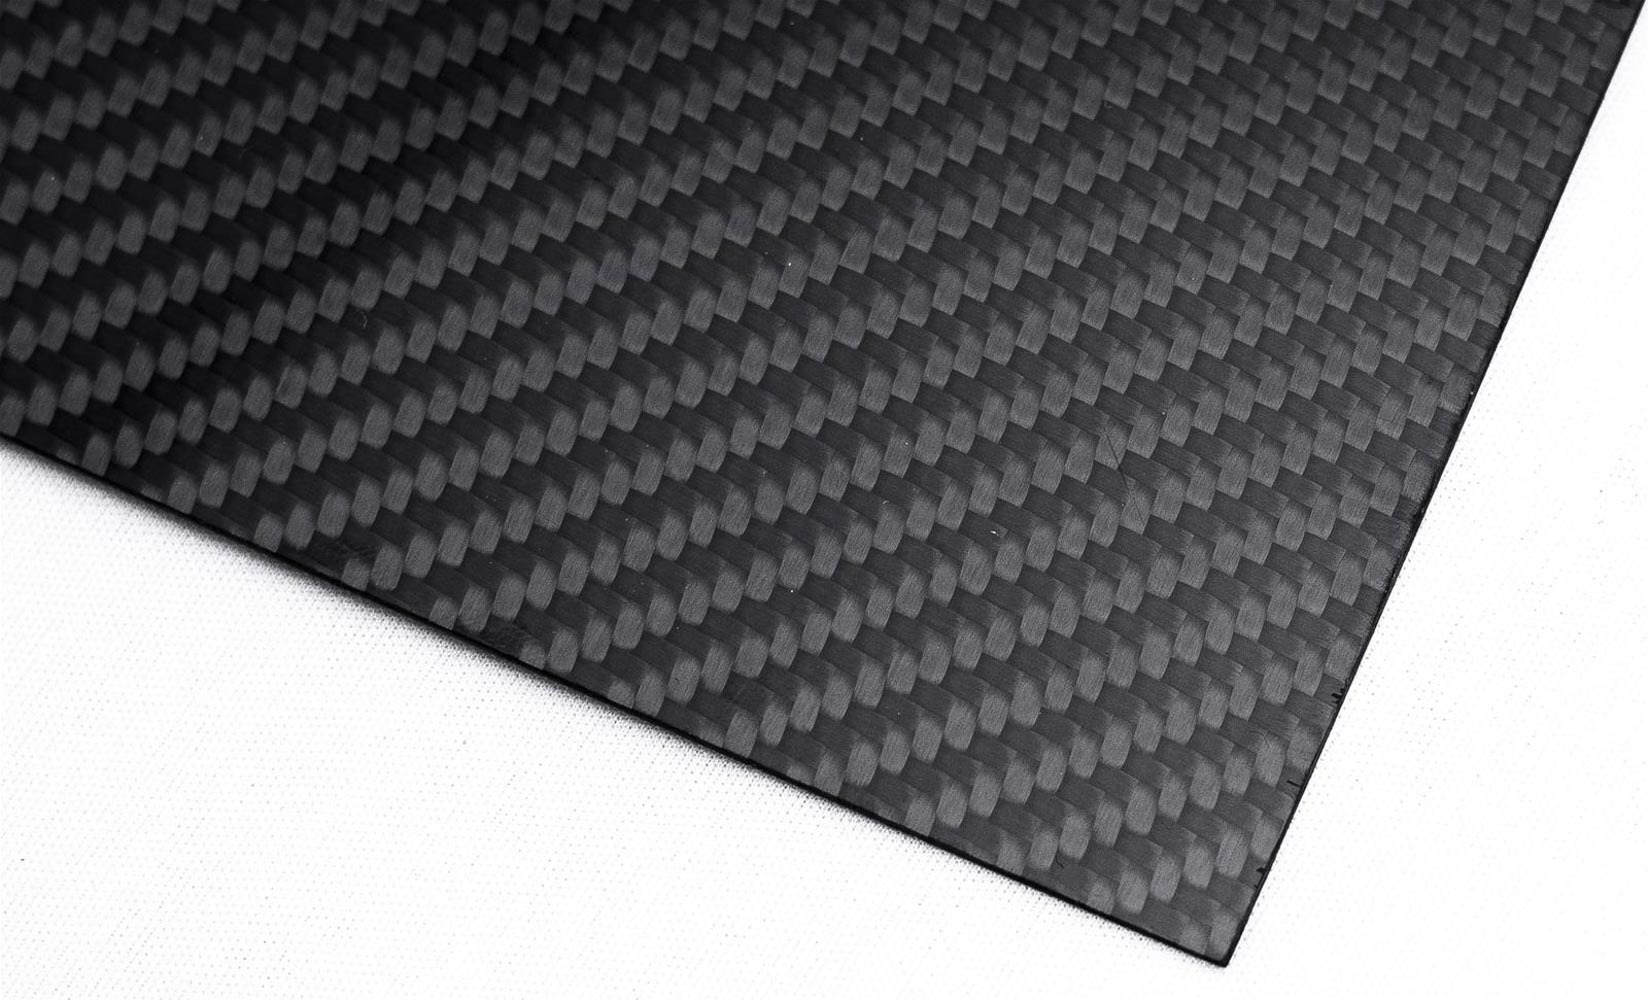 Real Carbon Fiber Sheet Matte Finish 24in x 39in